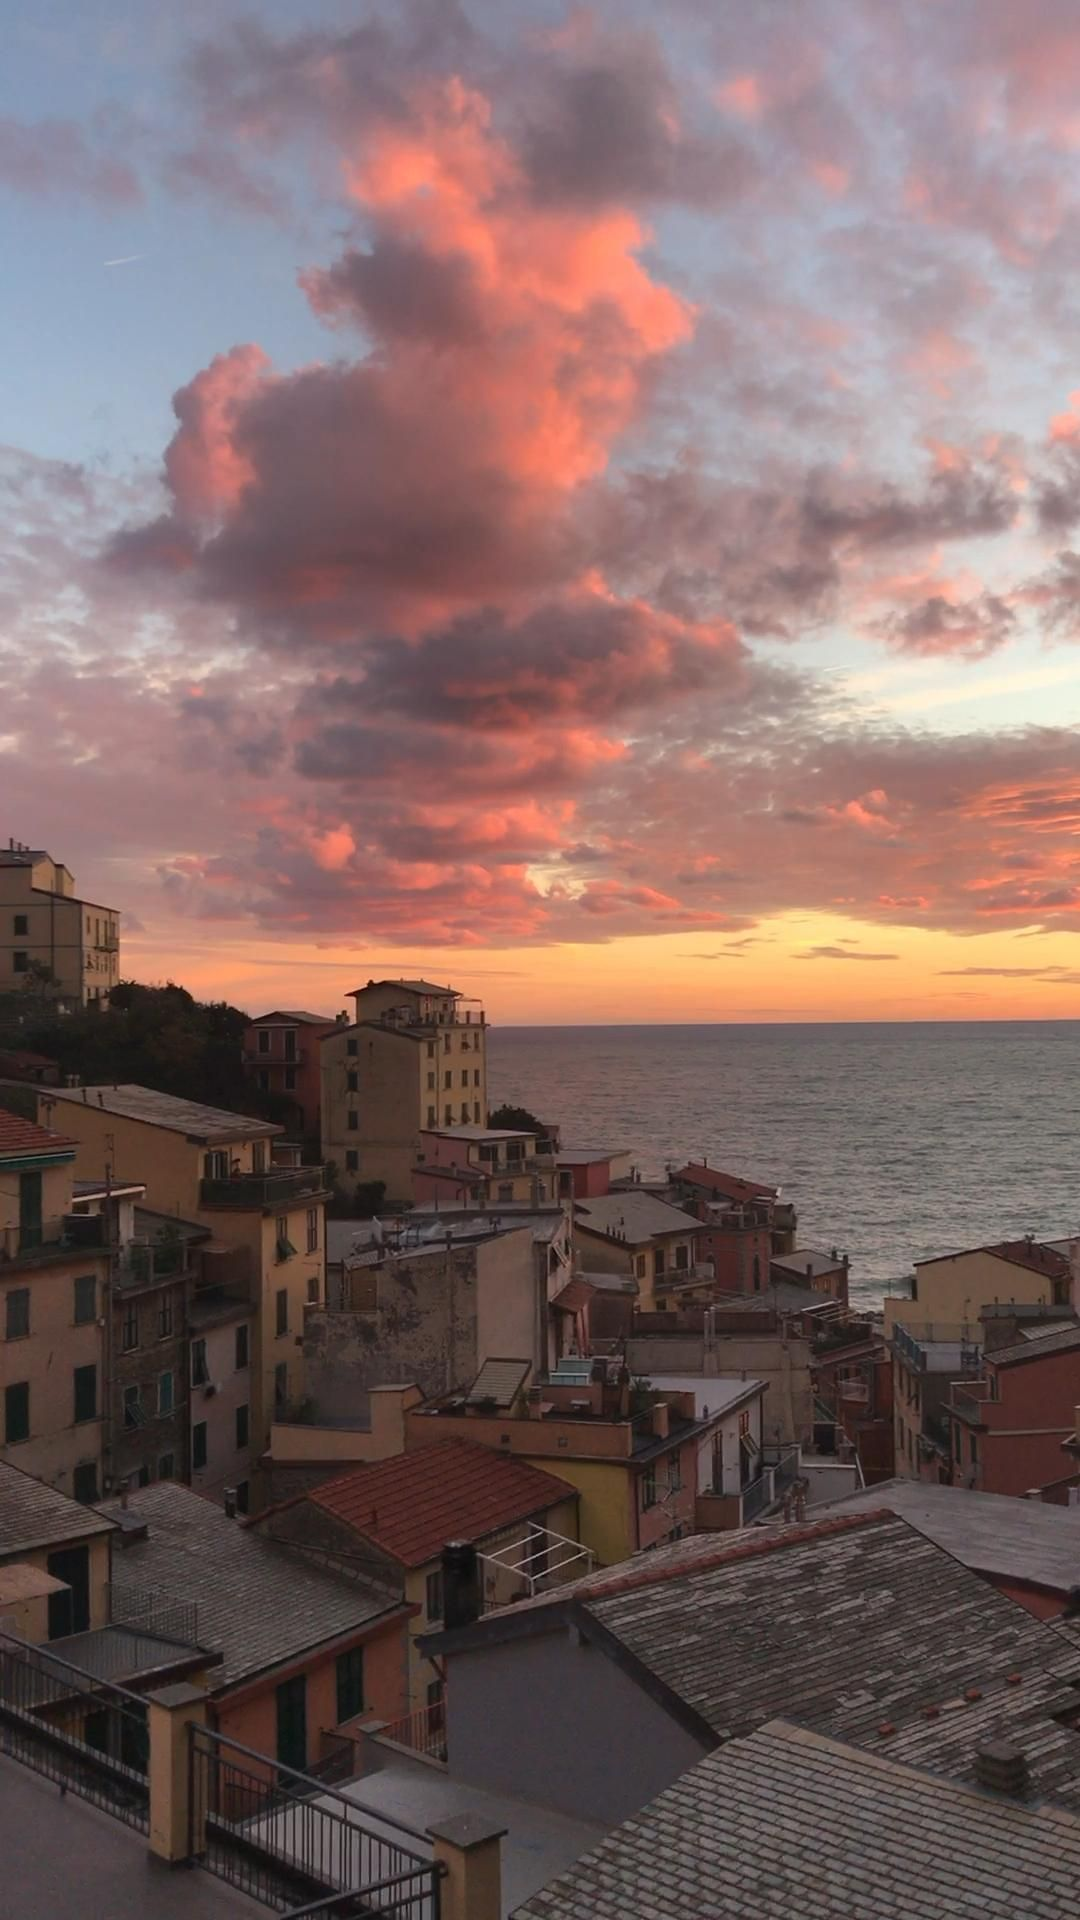 A beautiful sunset in the village of Riomaggiore in Cinque Terre, Italy. Find also 34 images to inspire you to visit Cinque Terre, Italy. #cinqueterre #riomaggiore #italytravel #italyvacation